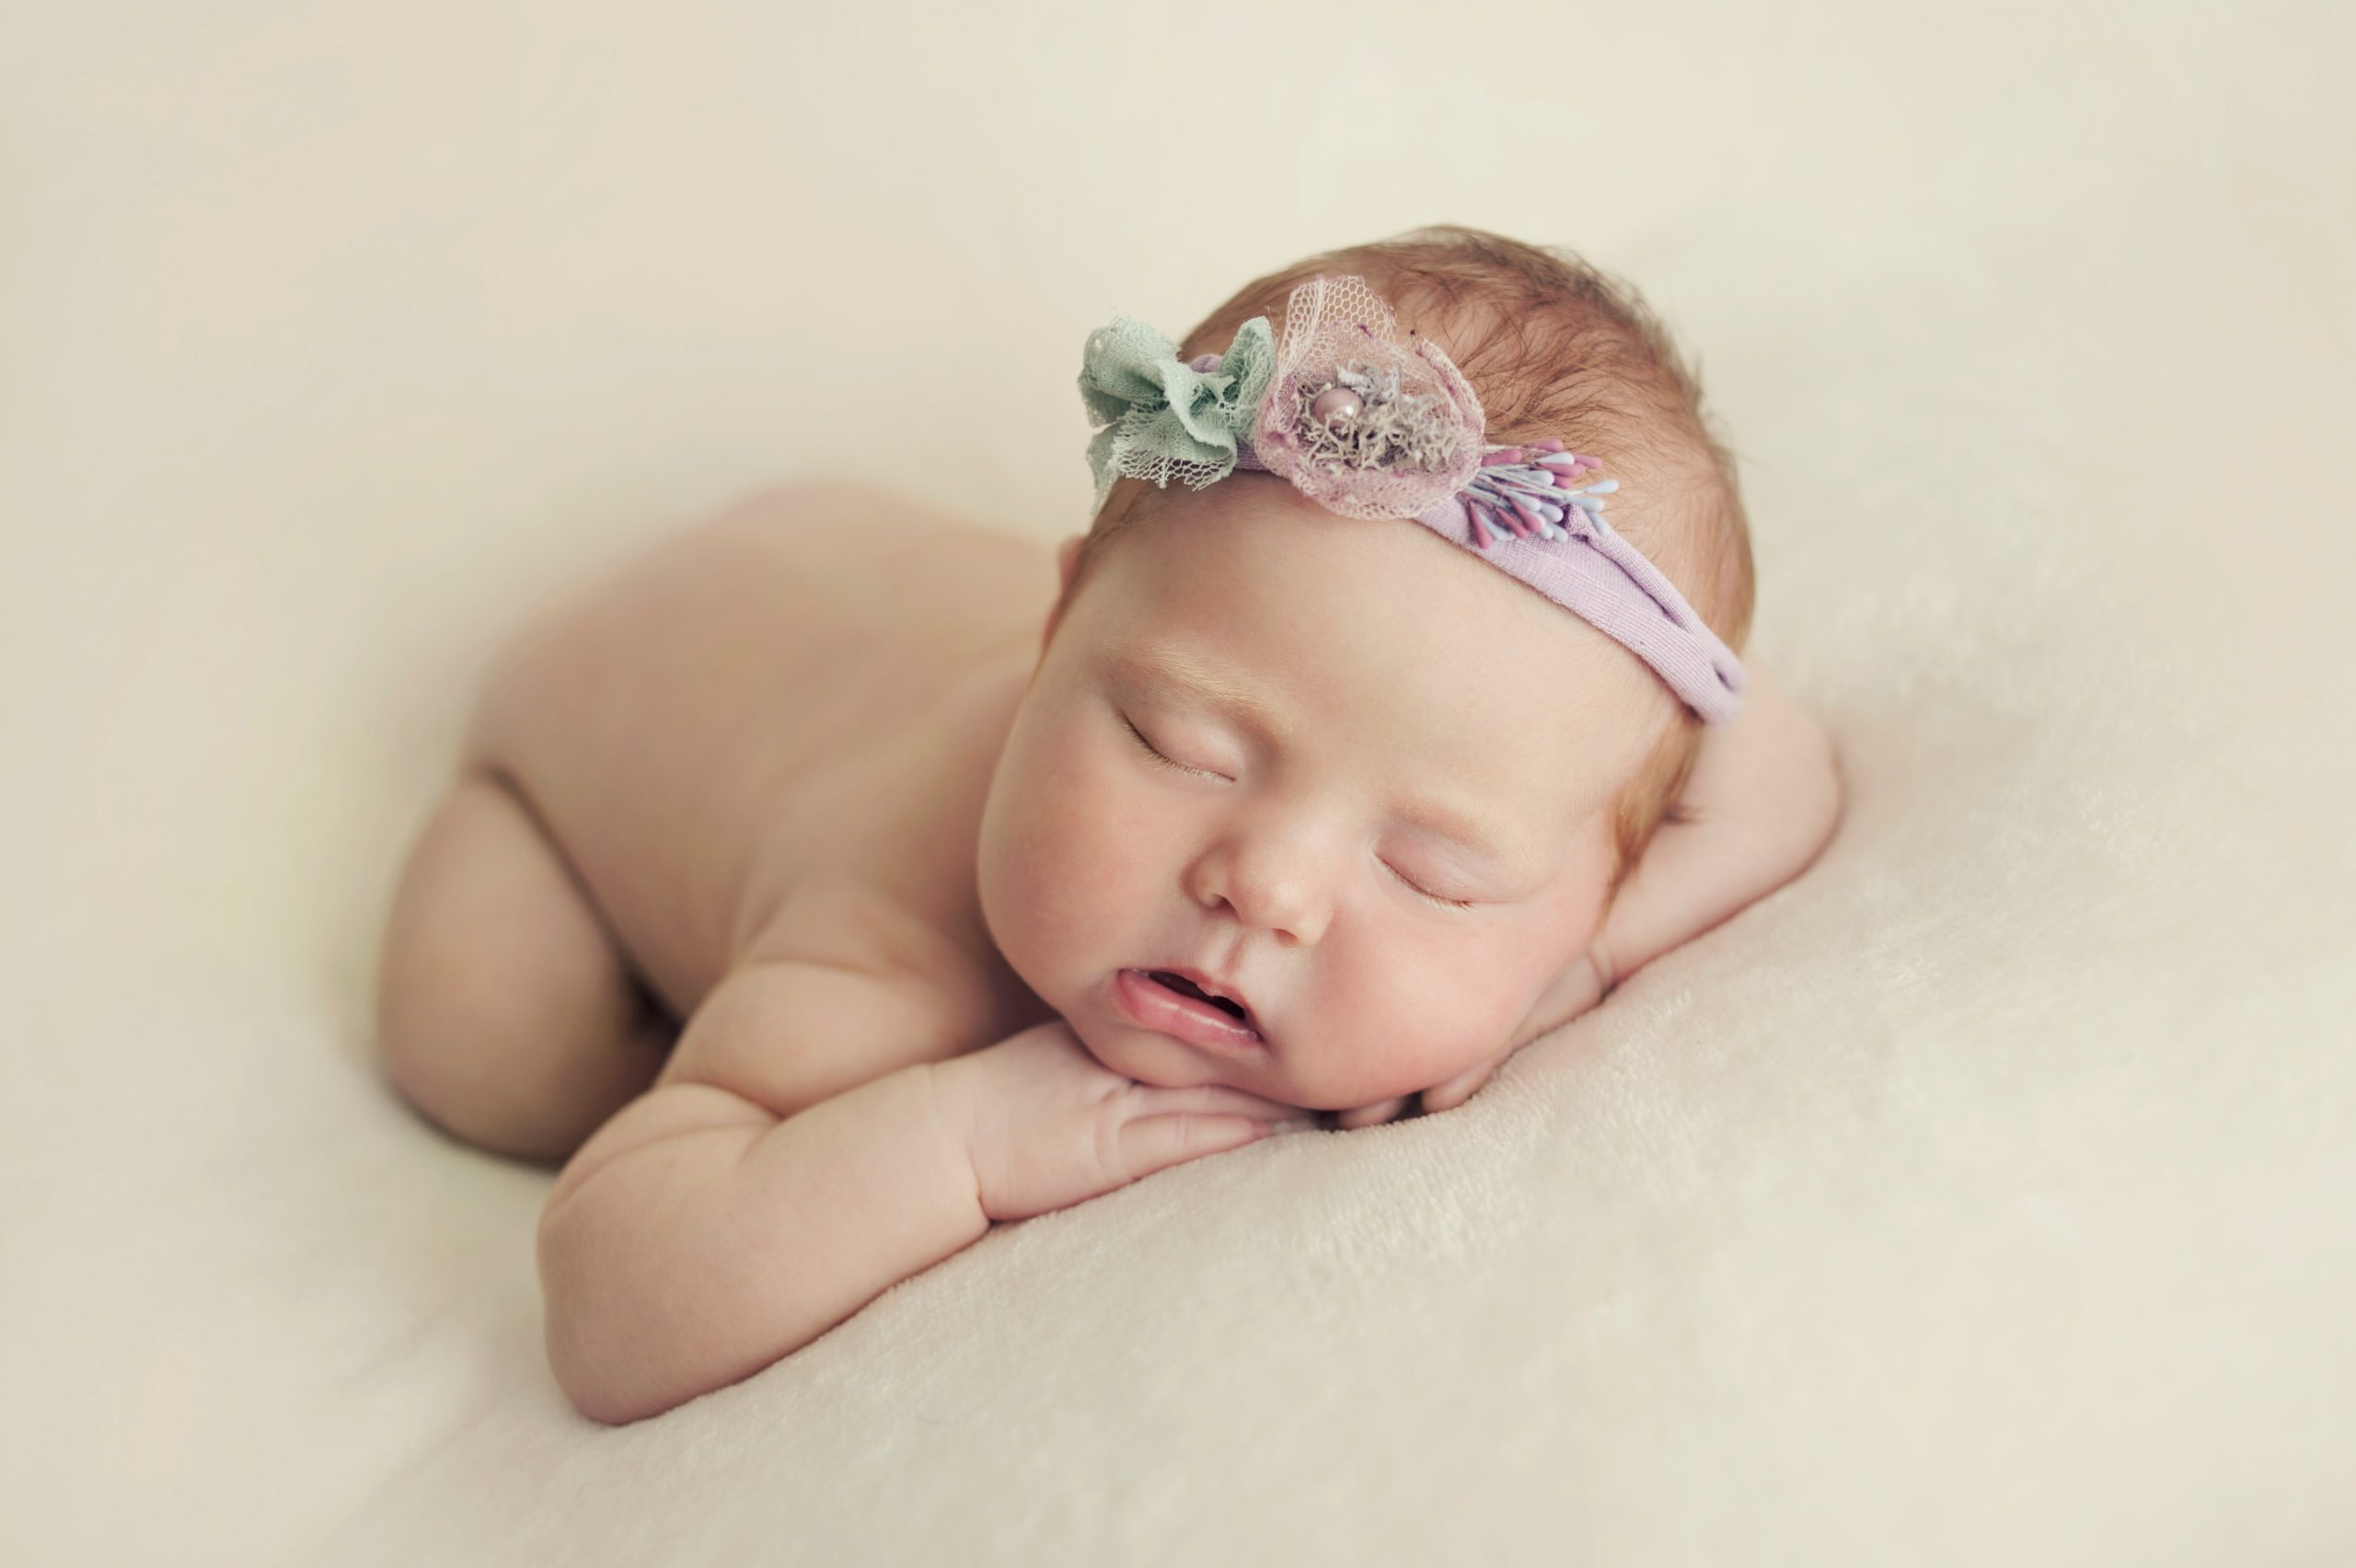 newborn baby photographer wedding barnsley south yorkshire